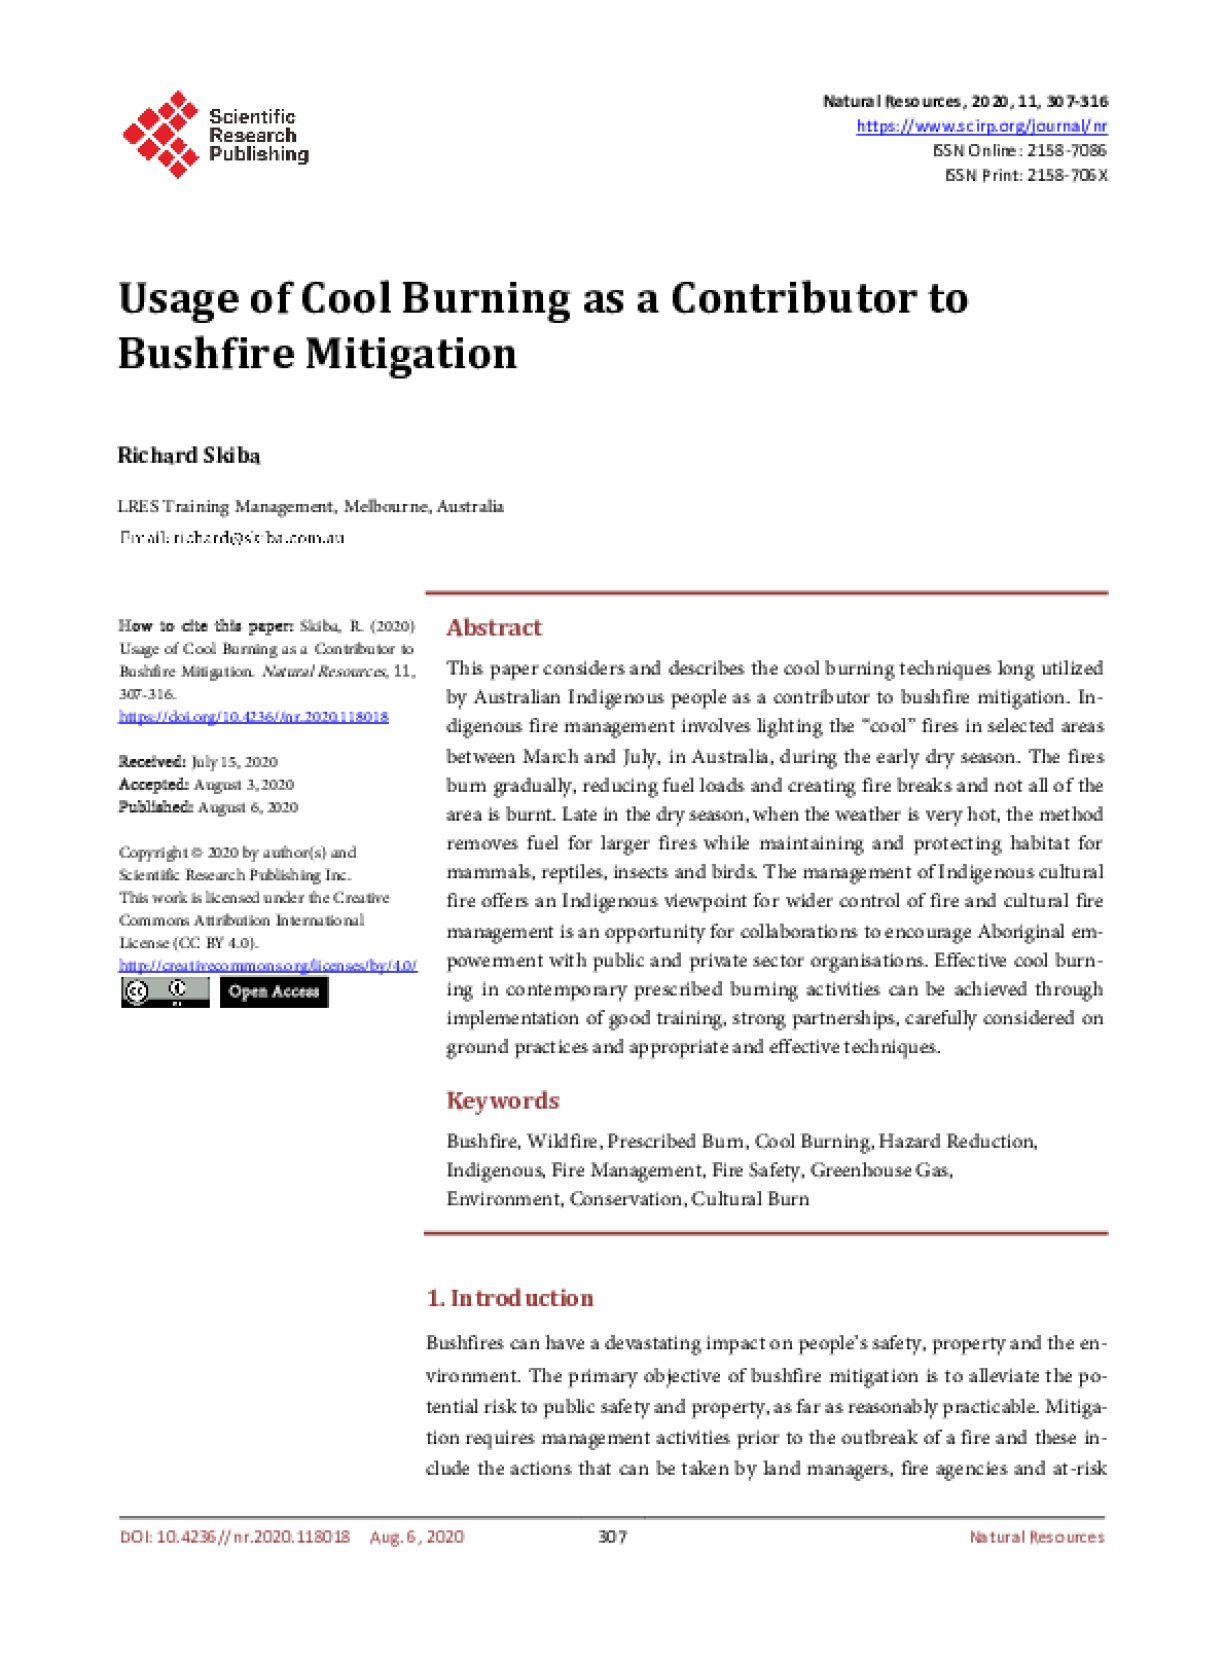 Usage of Cool Burning as a Contributor to Bushfire Mitigation